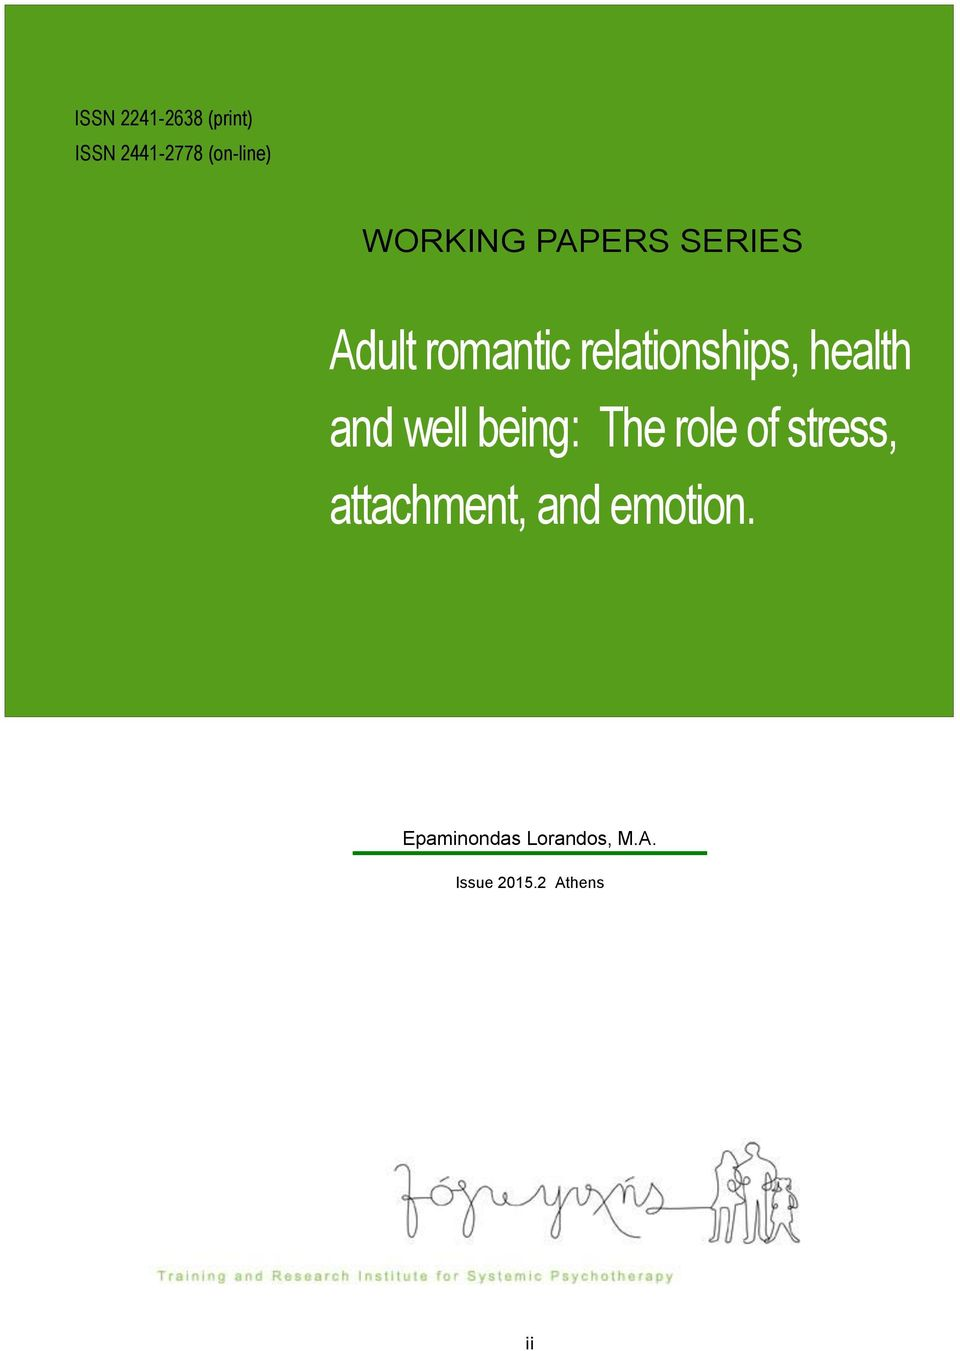 health and well being: The role of stress, attachment,